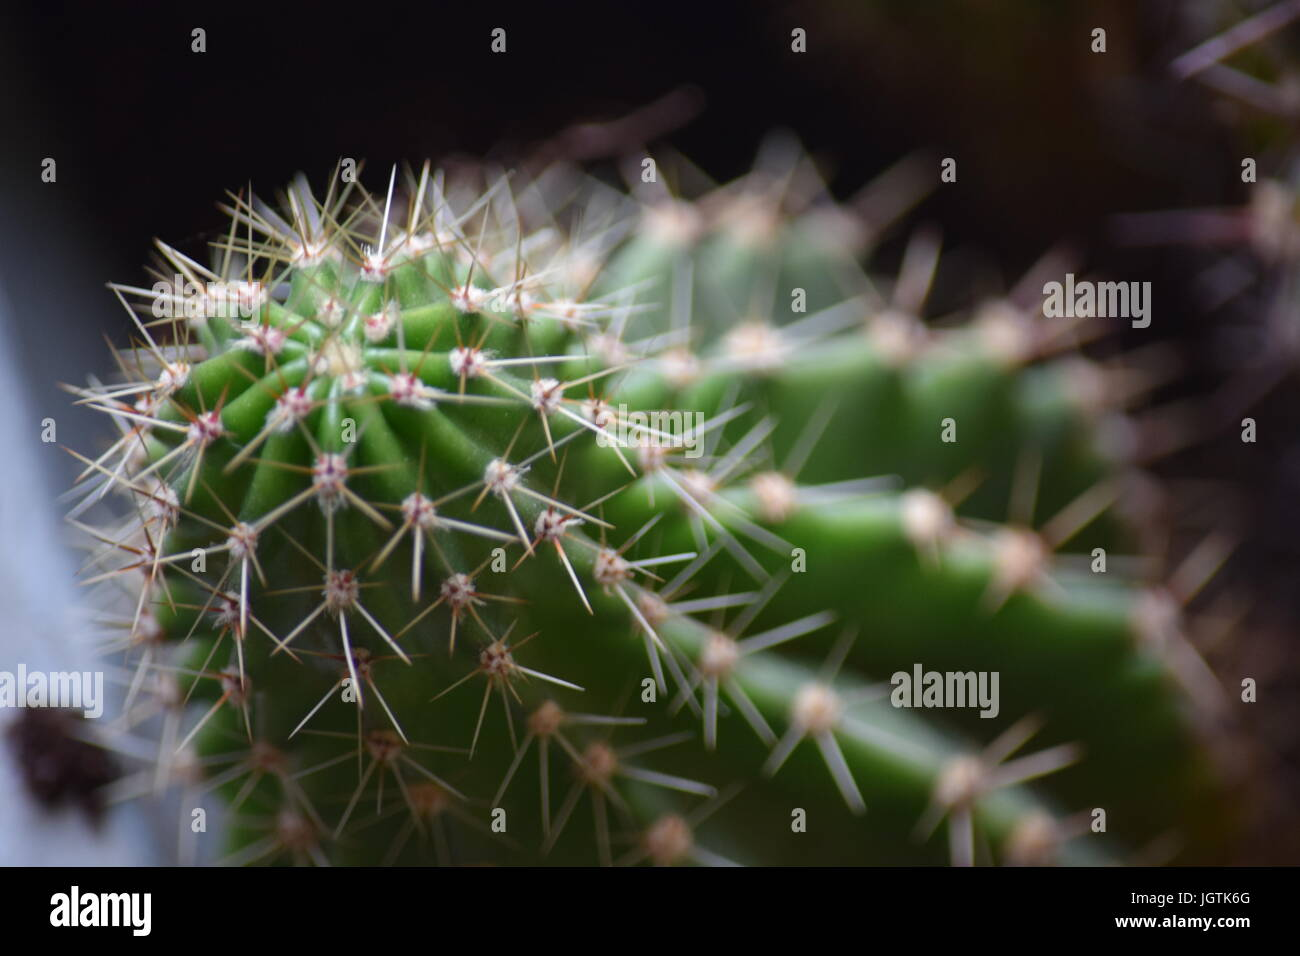 Spines of cactus - Stock Image